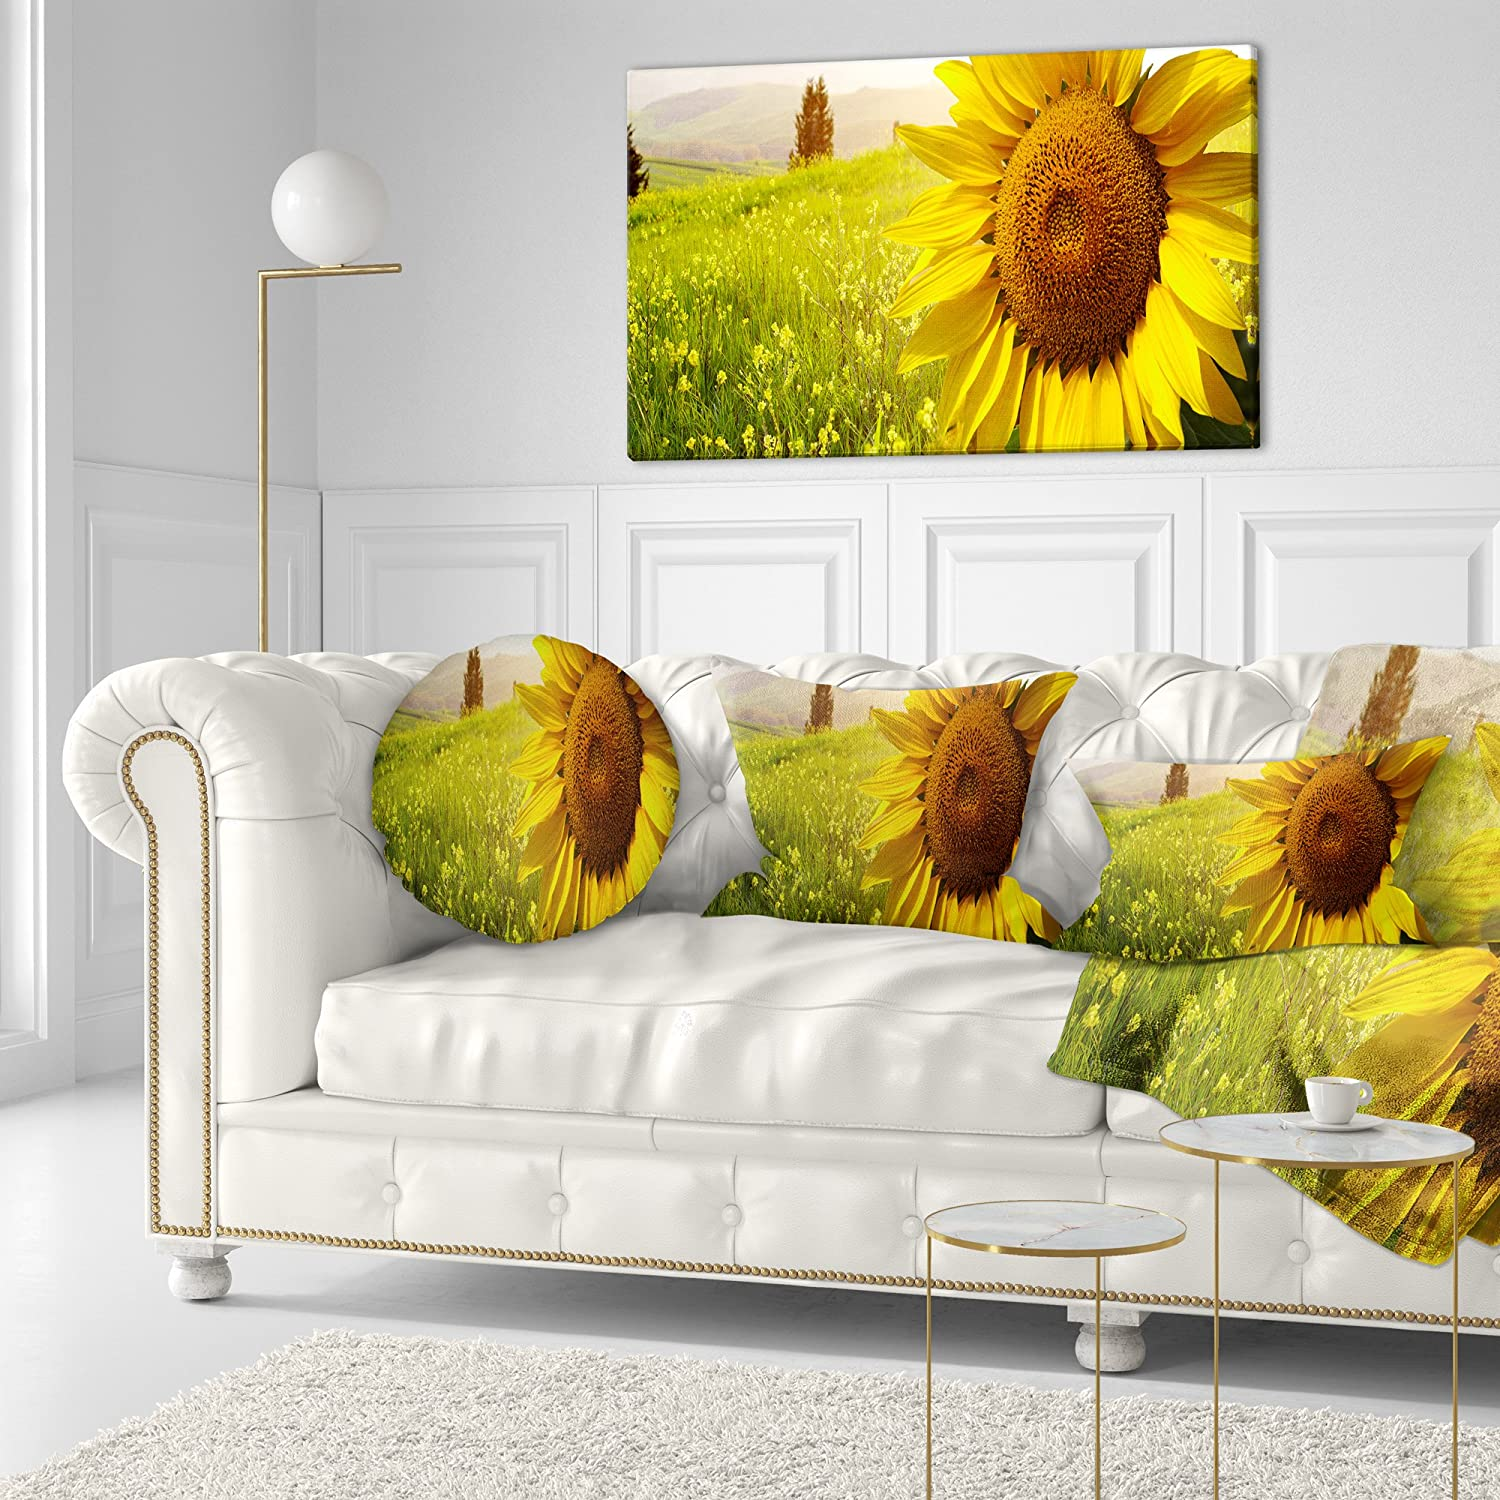 Sofa Throw Pillow 16 Designart CU9438-16-16-C Yellow Field with Big Sunflower Landscape Printed Round Cushion Cover for Living Room